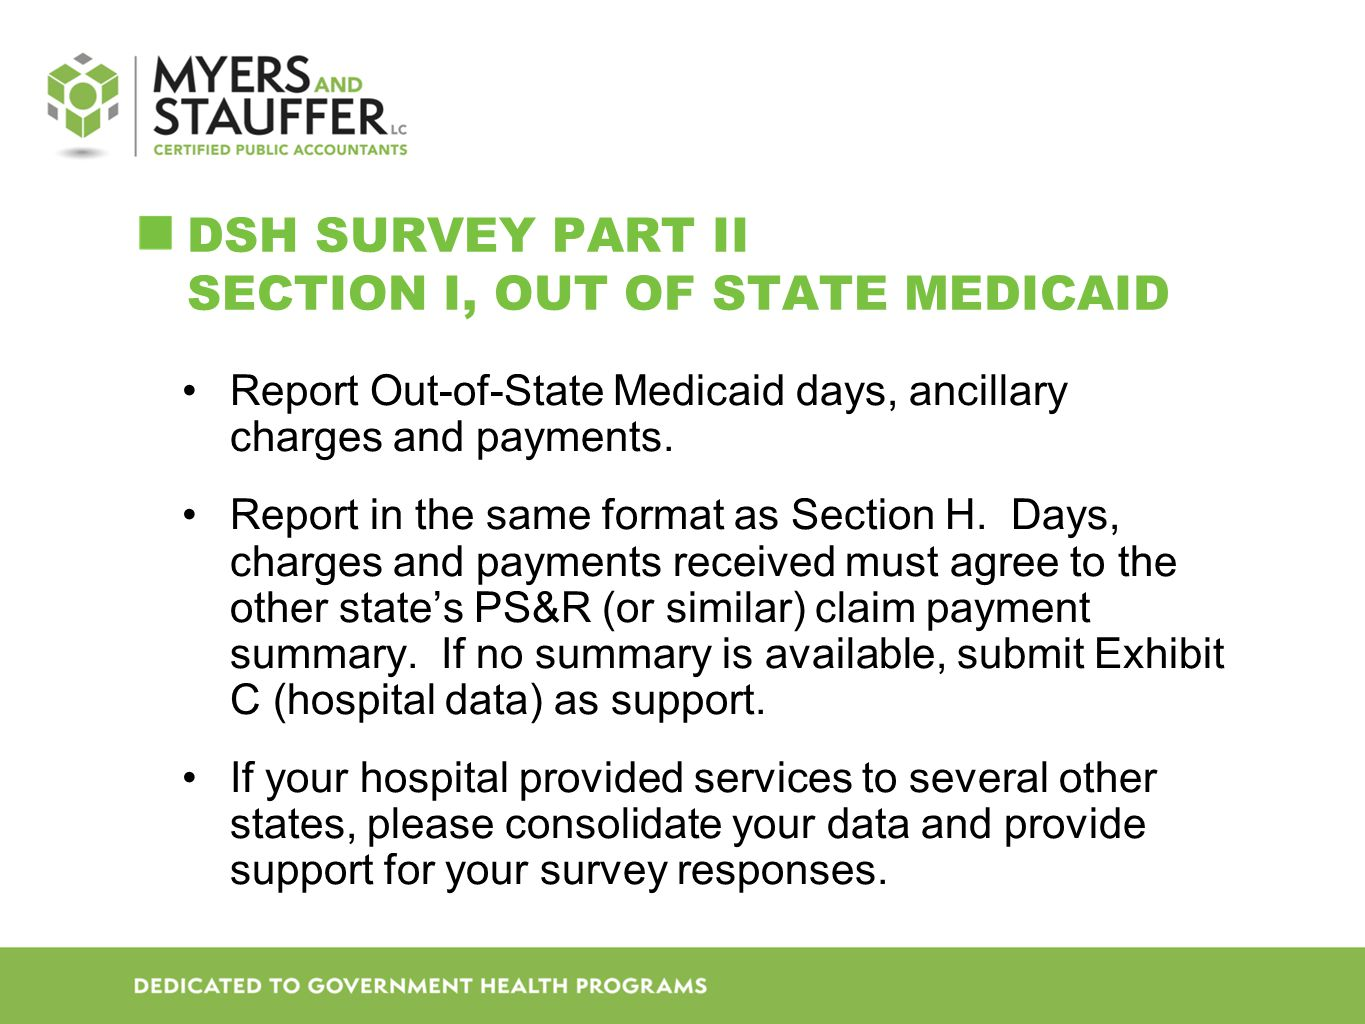 DSH SURVEY Part II Section I, Out of State Medicaid